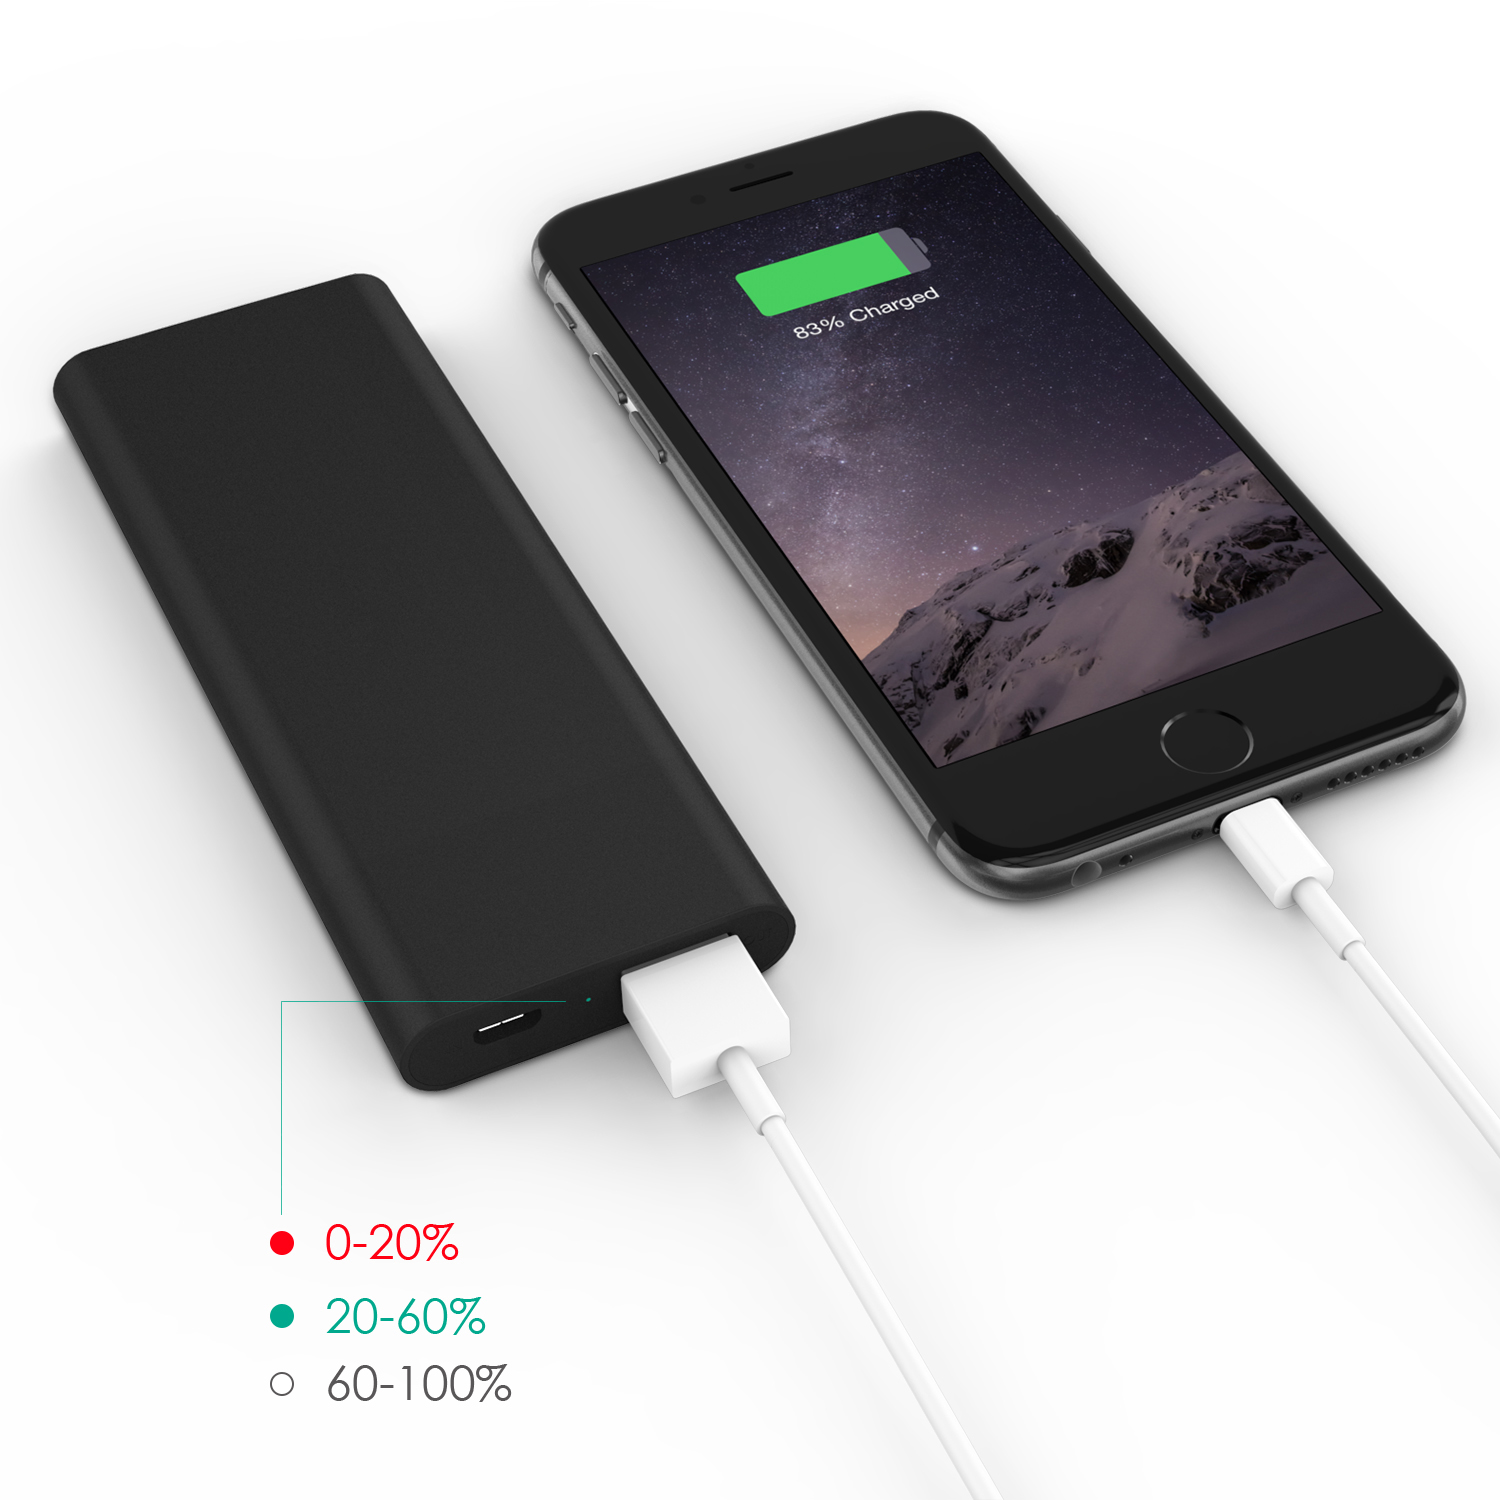 3600 mAh Slim Portable External Battery Pack Firefly PE-N26 Black 8